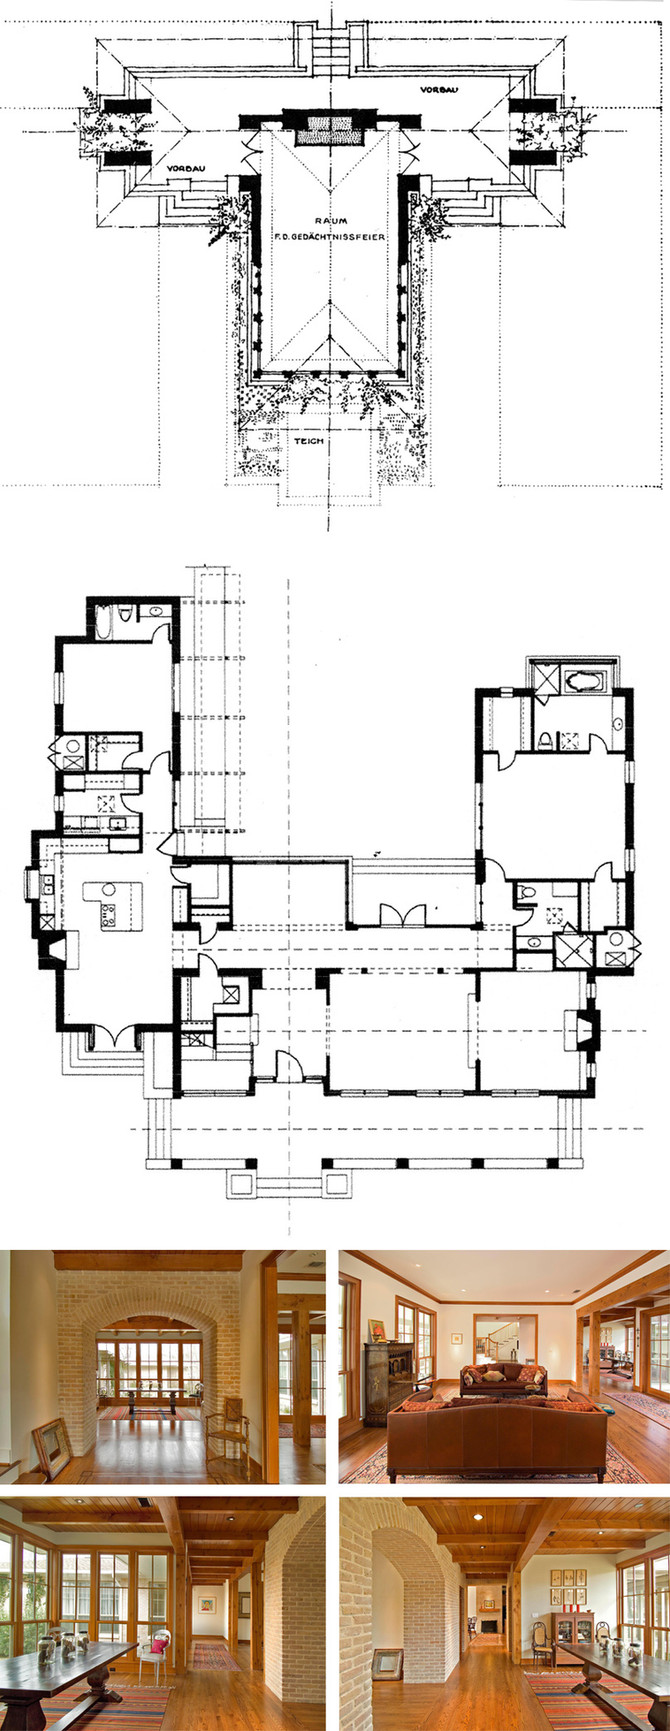 A LESSON LEARNED FROM FRANK LLOYD  WRIGHT – FROM MAJOR TO MINOR